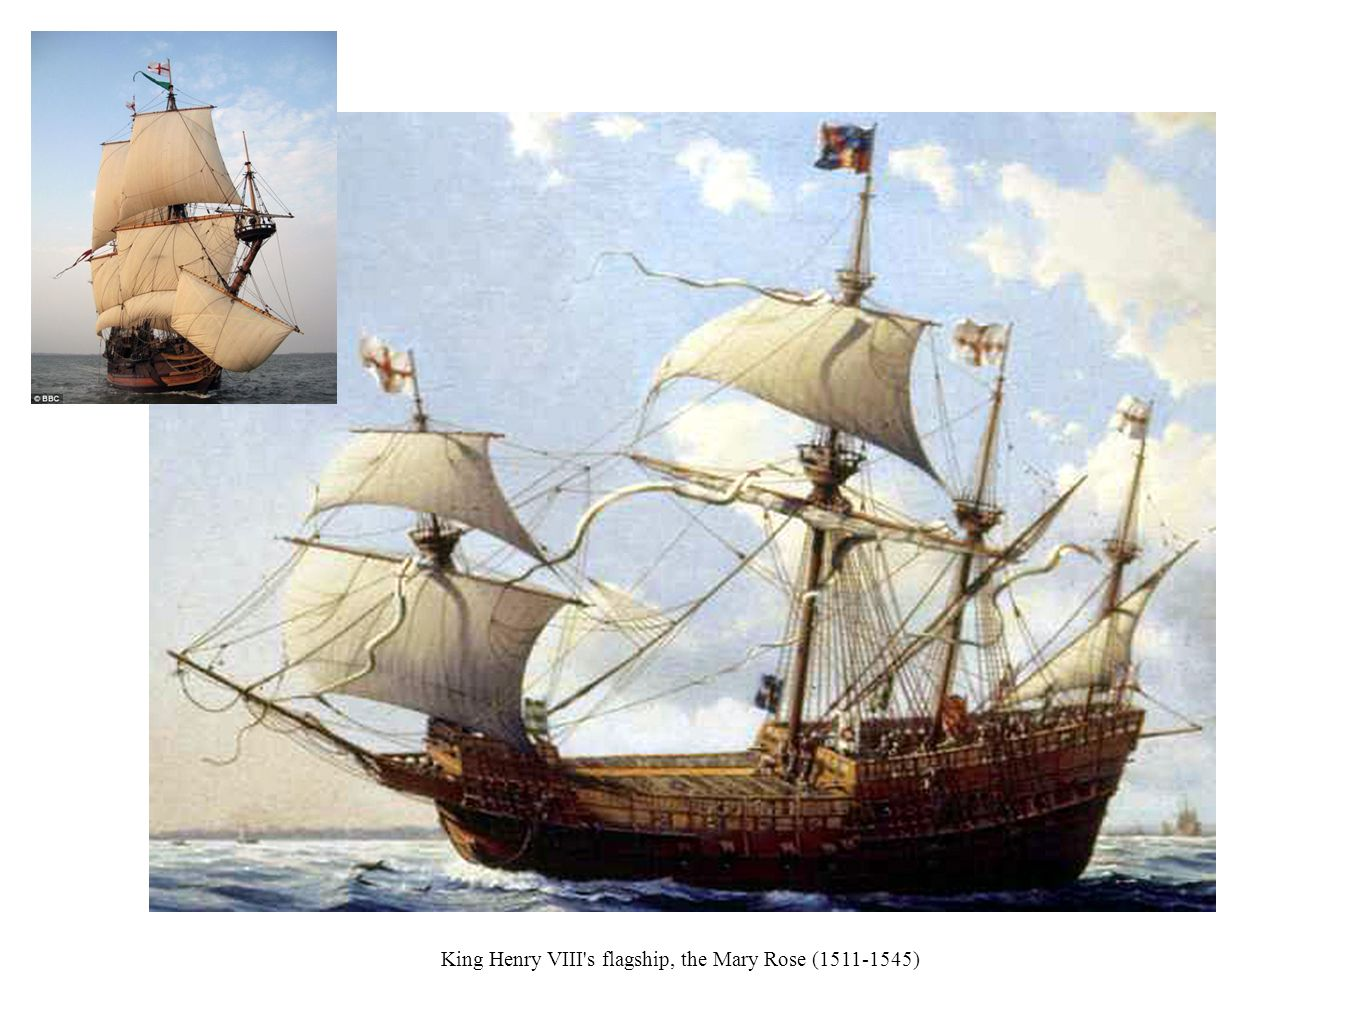 King Henry VIII s flagship, the Mary Rose (1511-1545)